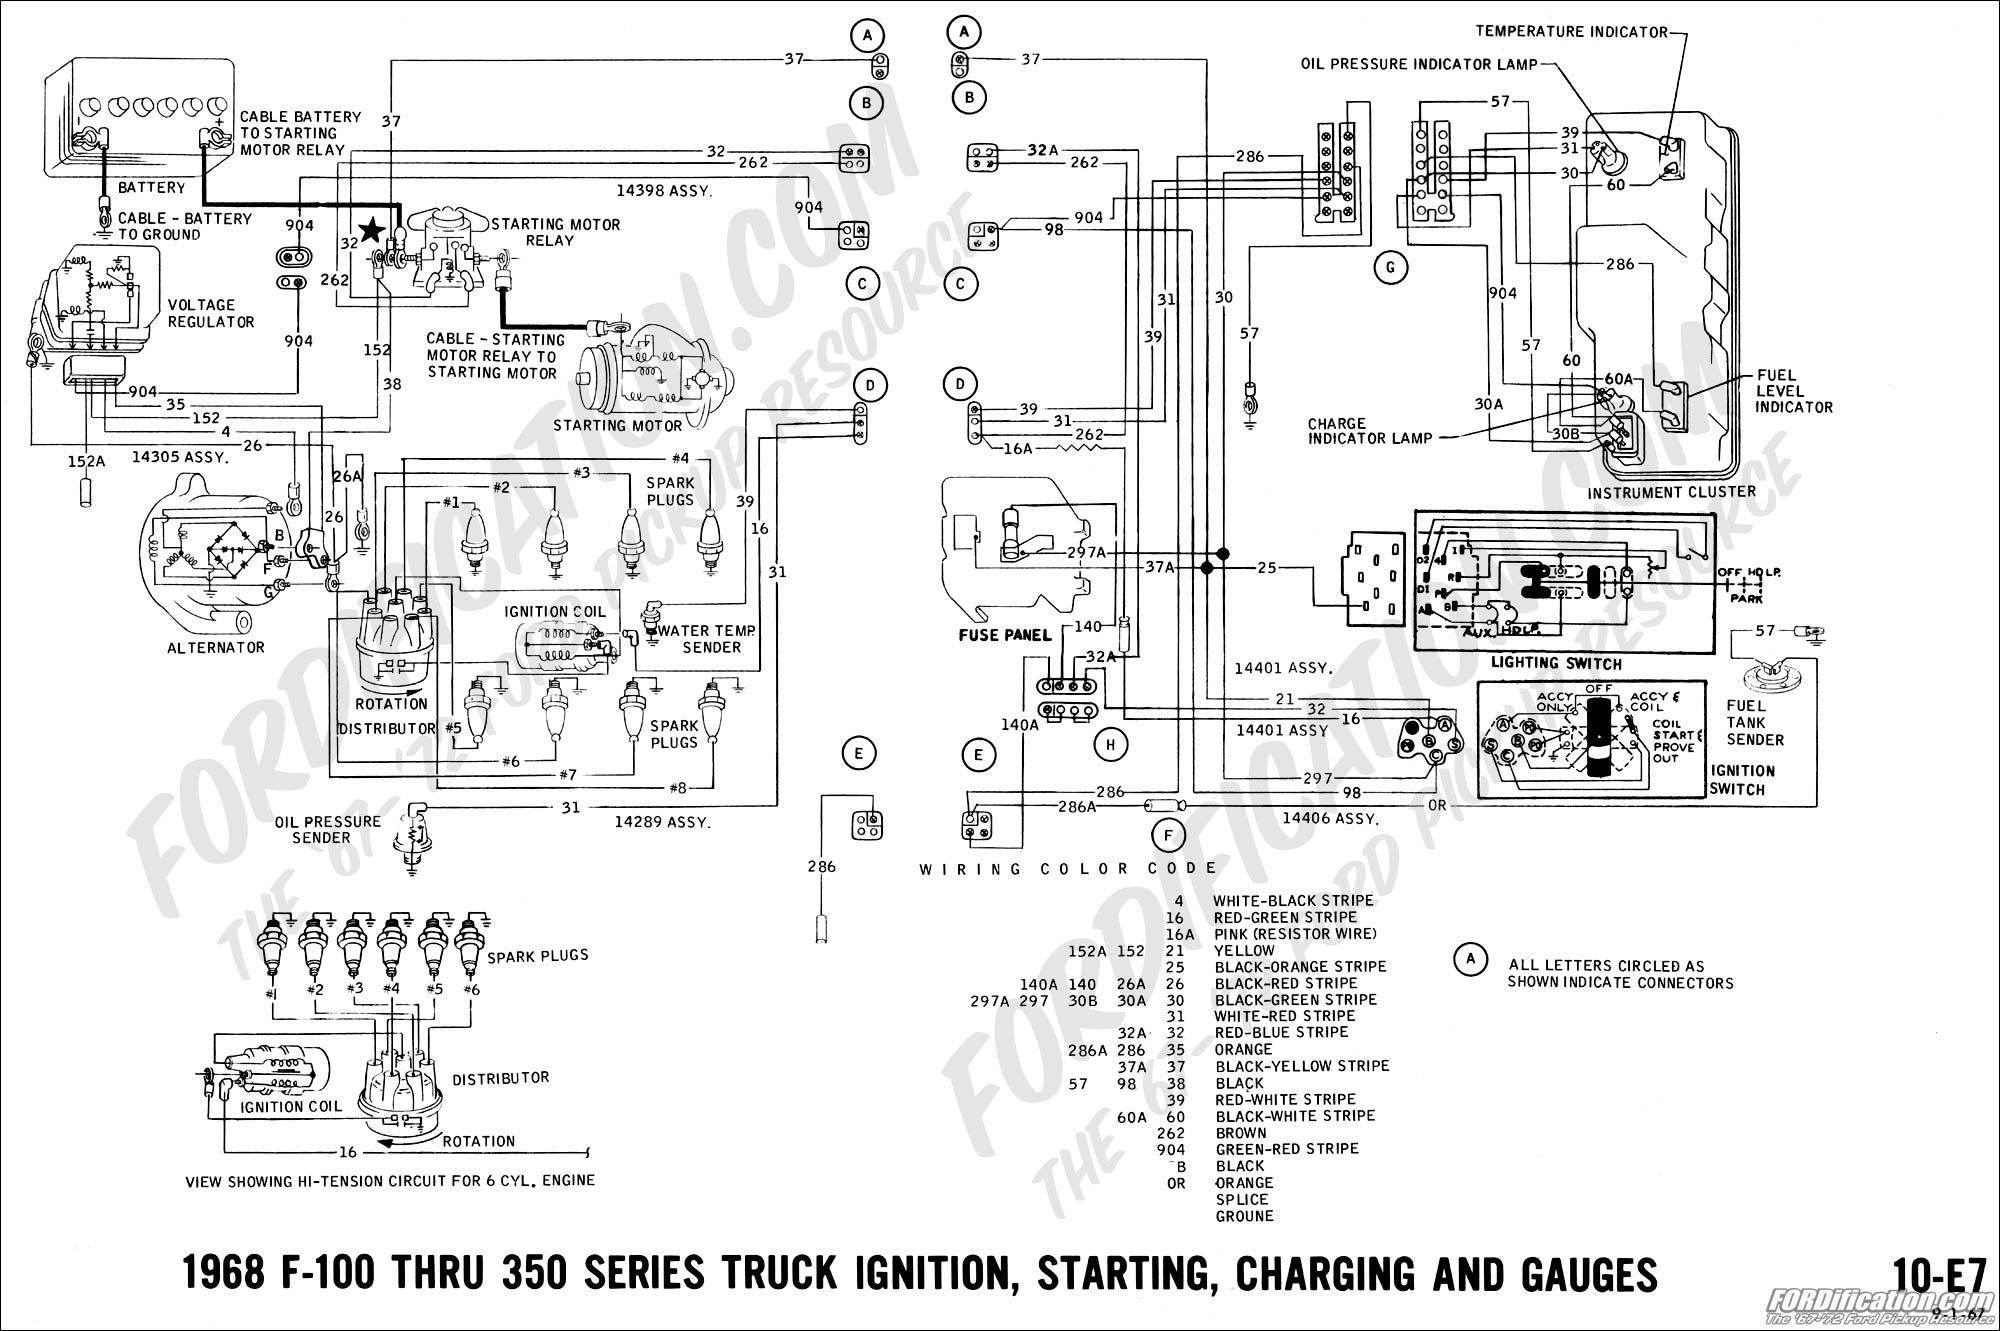 1968 f100 wiring diagram another blog about wiring diagram u2022 rh ok2  infoservice ru